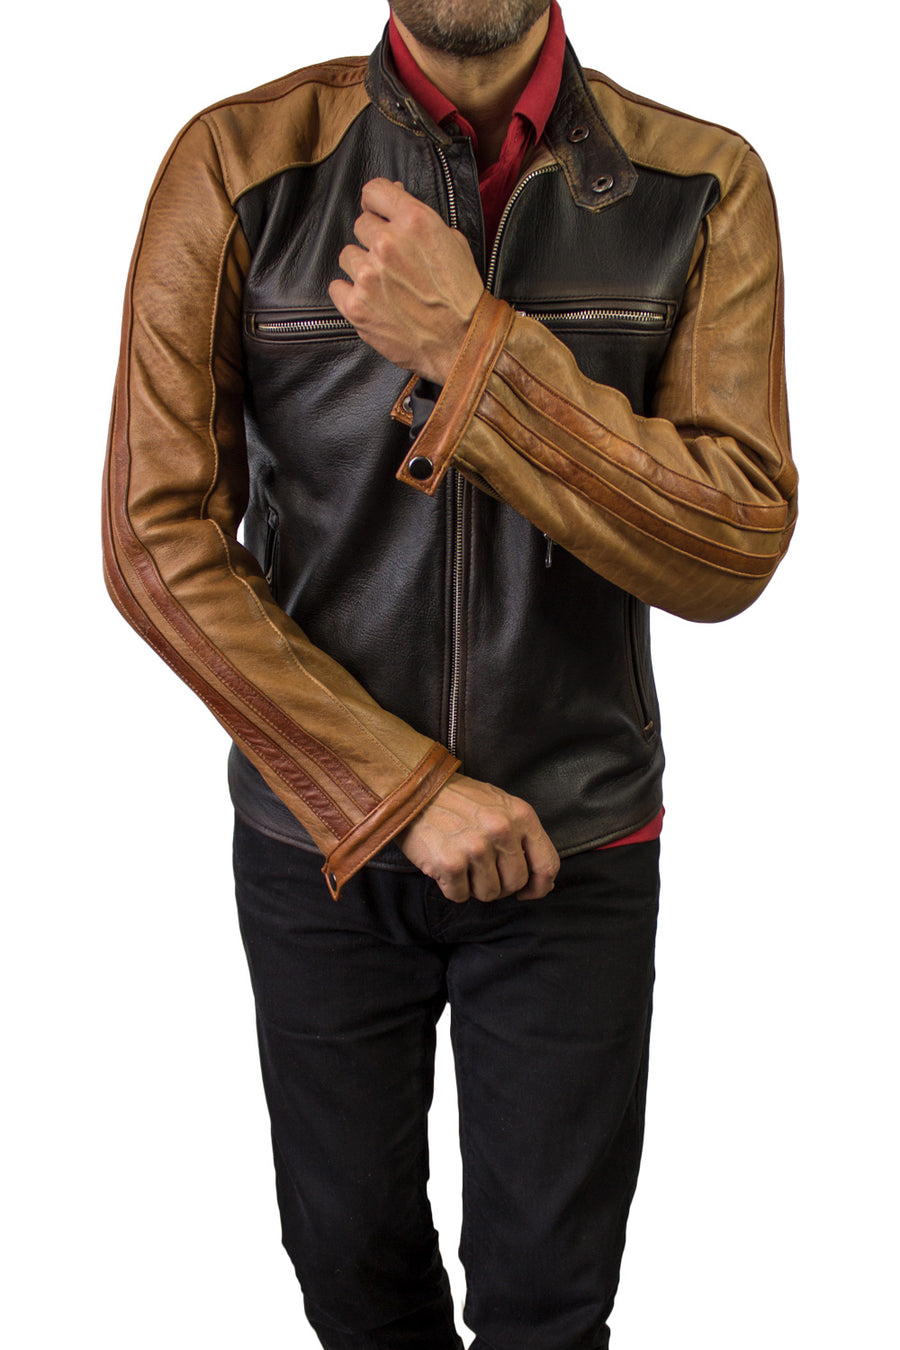 CARRERA Leather Jacket Cafe Racer Stripes Motosport  - Brown